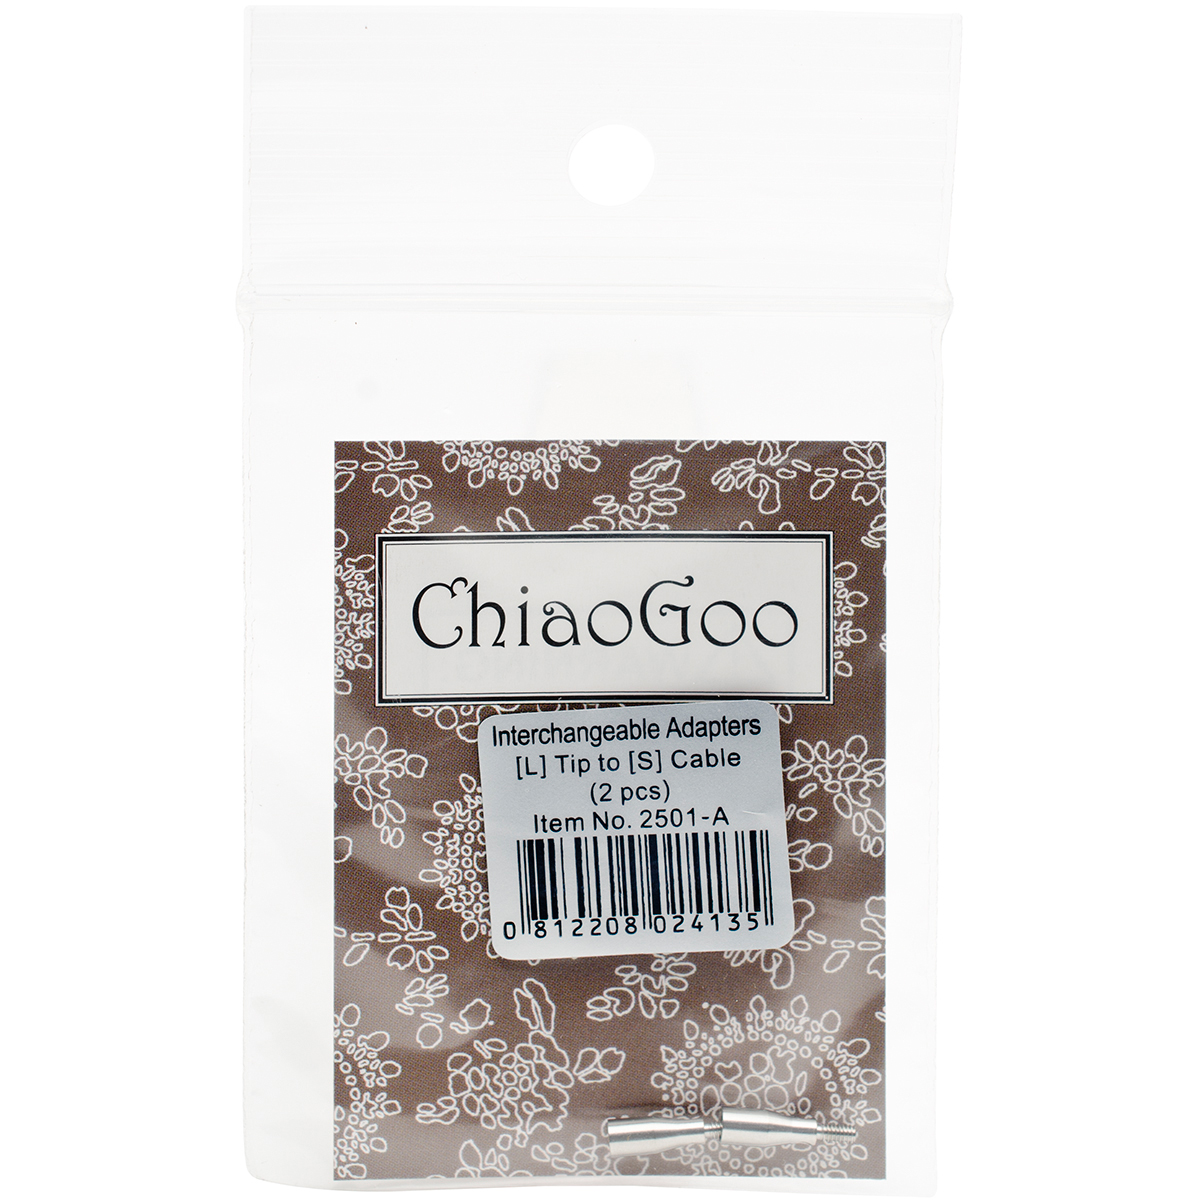 ChiaoGoo Cable Interchangeable Adapters 2/Pkg-Large - Small